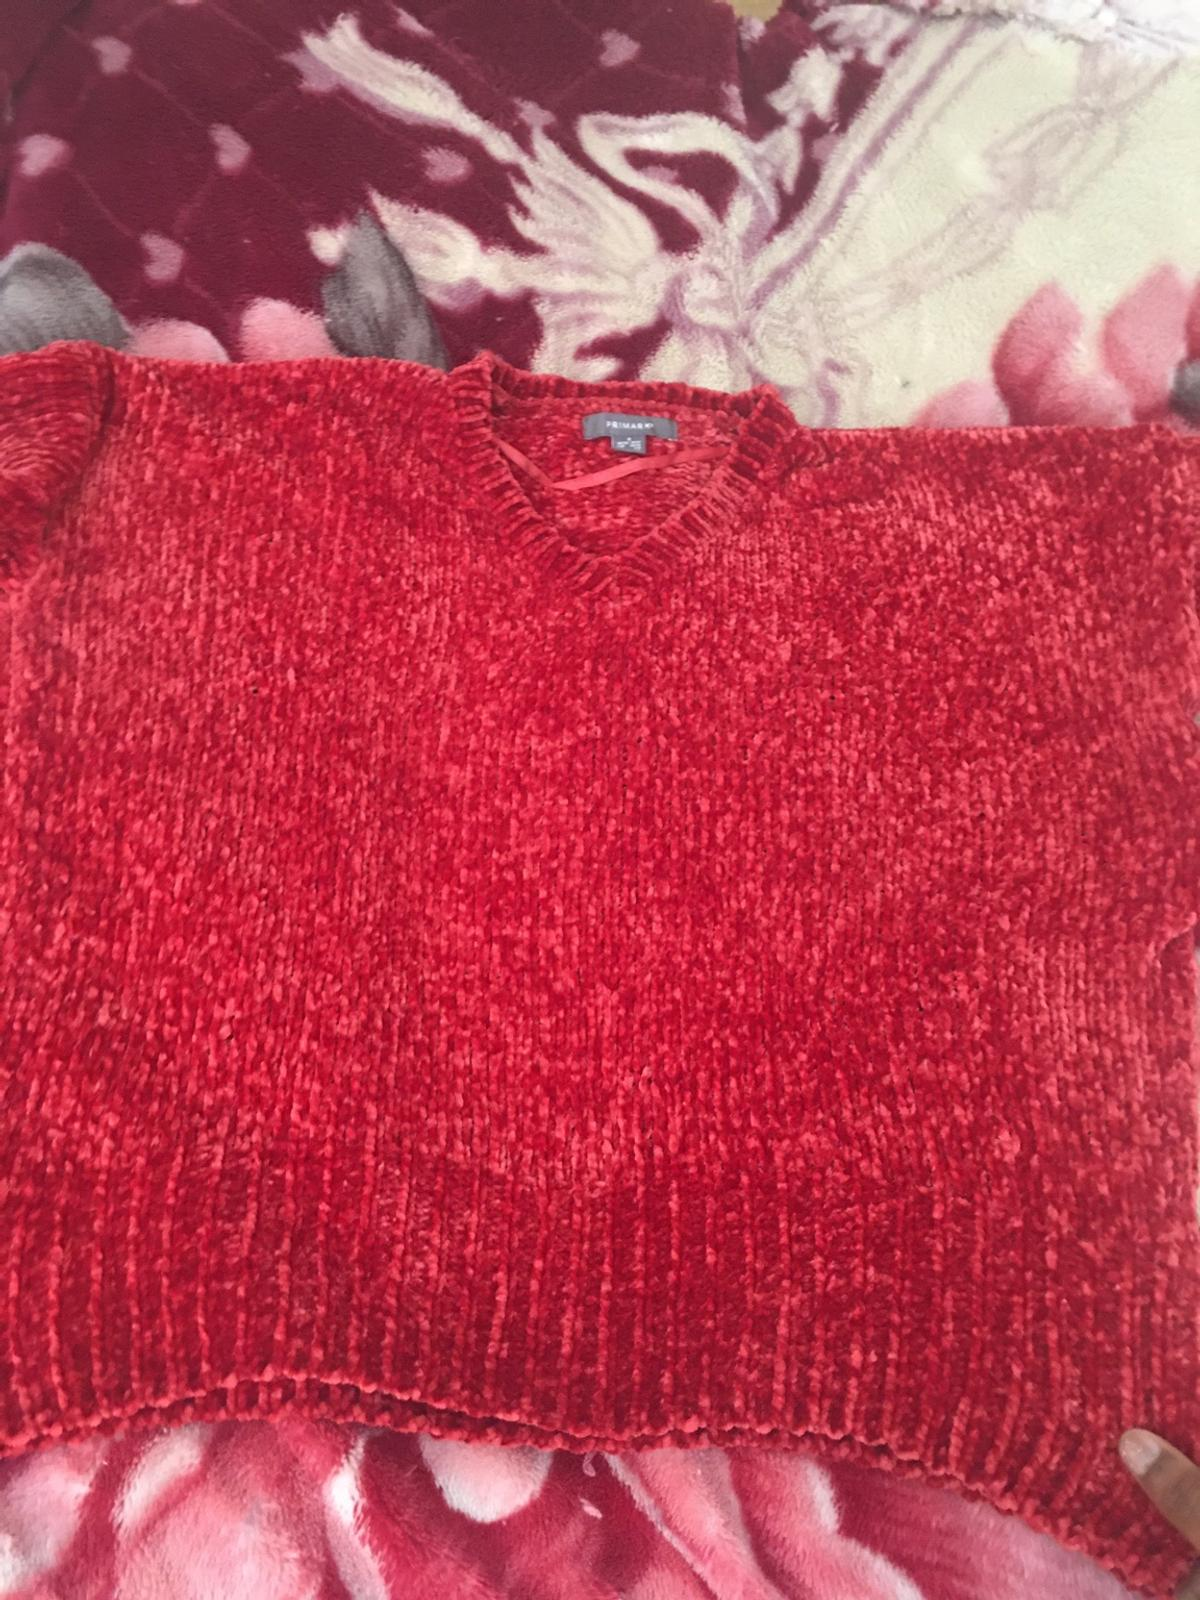 From primark, never worn but tag is off, in very good condition, size small- 10/12, velvet feel very cute, v-neck jumper, super soft